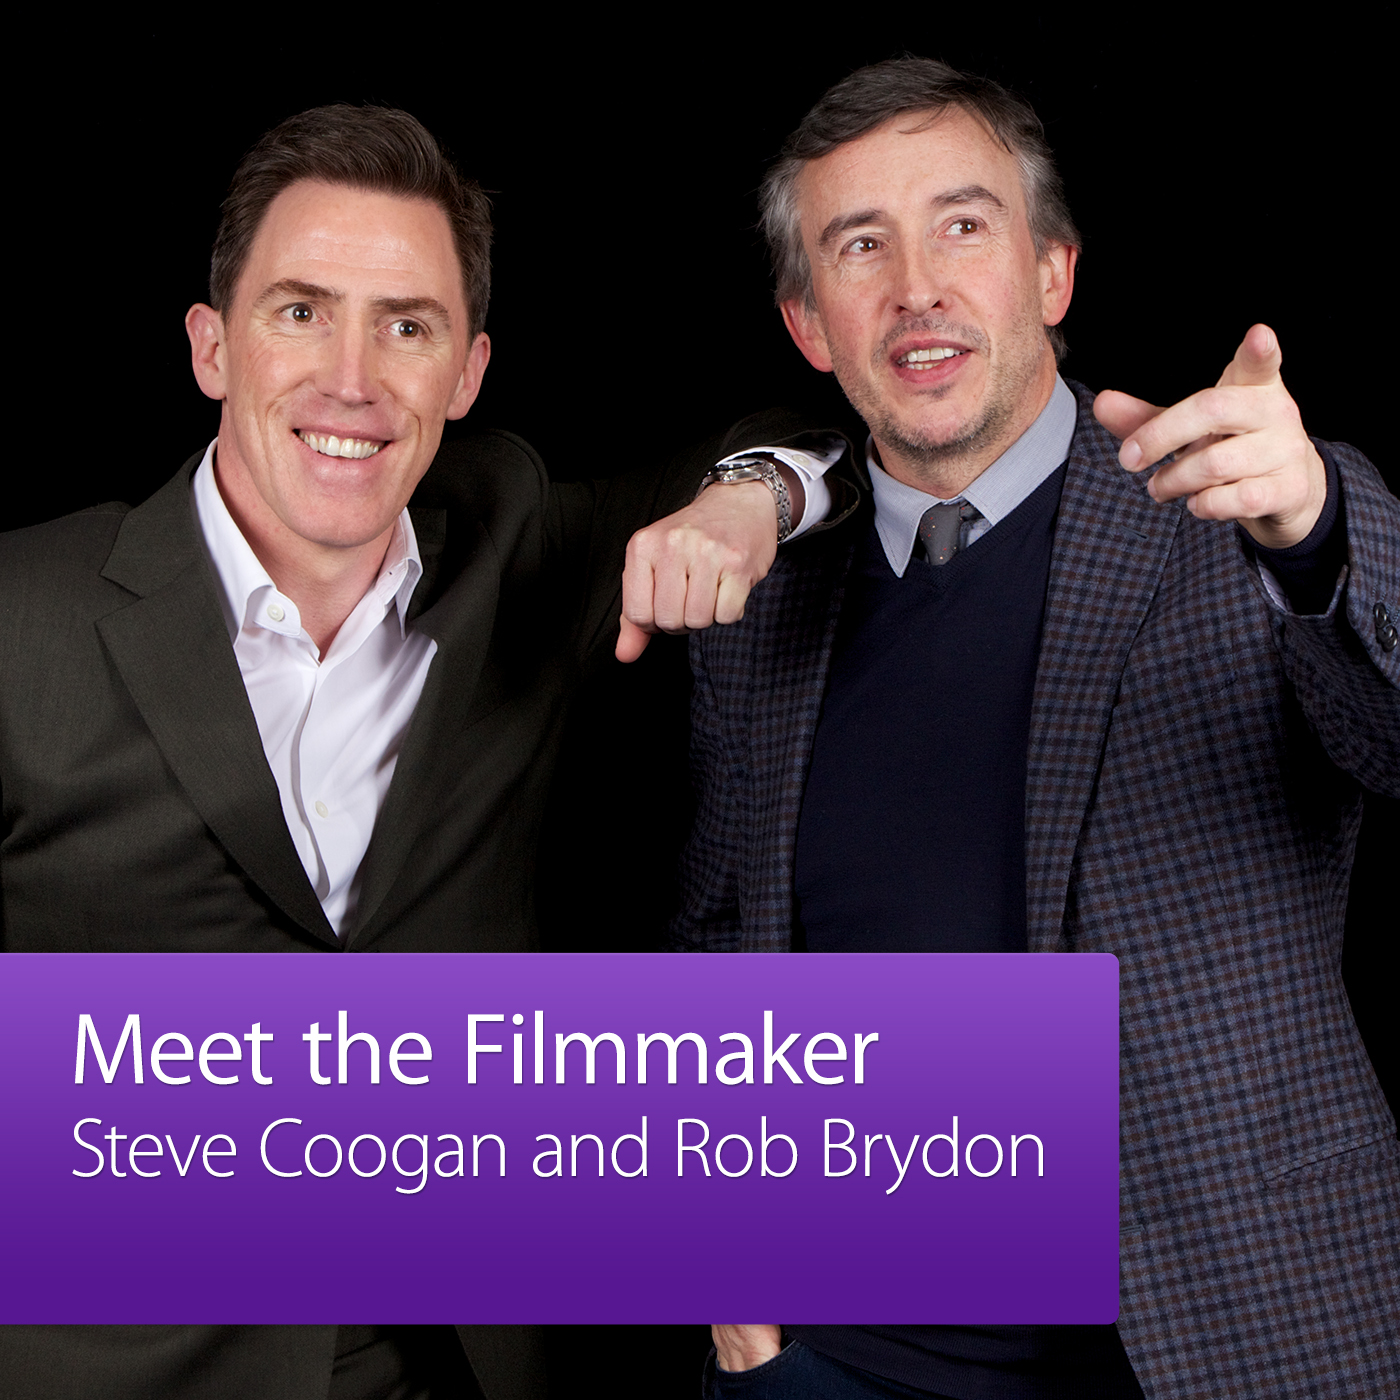 Steve Coogan and Rob Brydon: Meet the Filmmaker